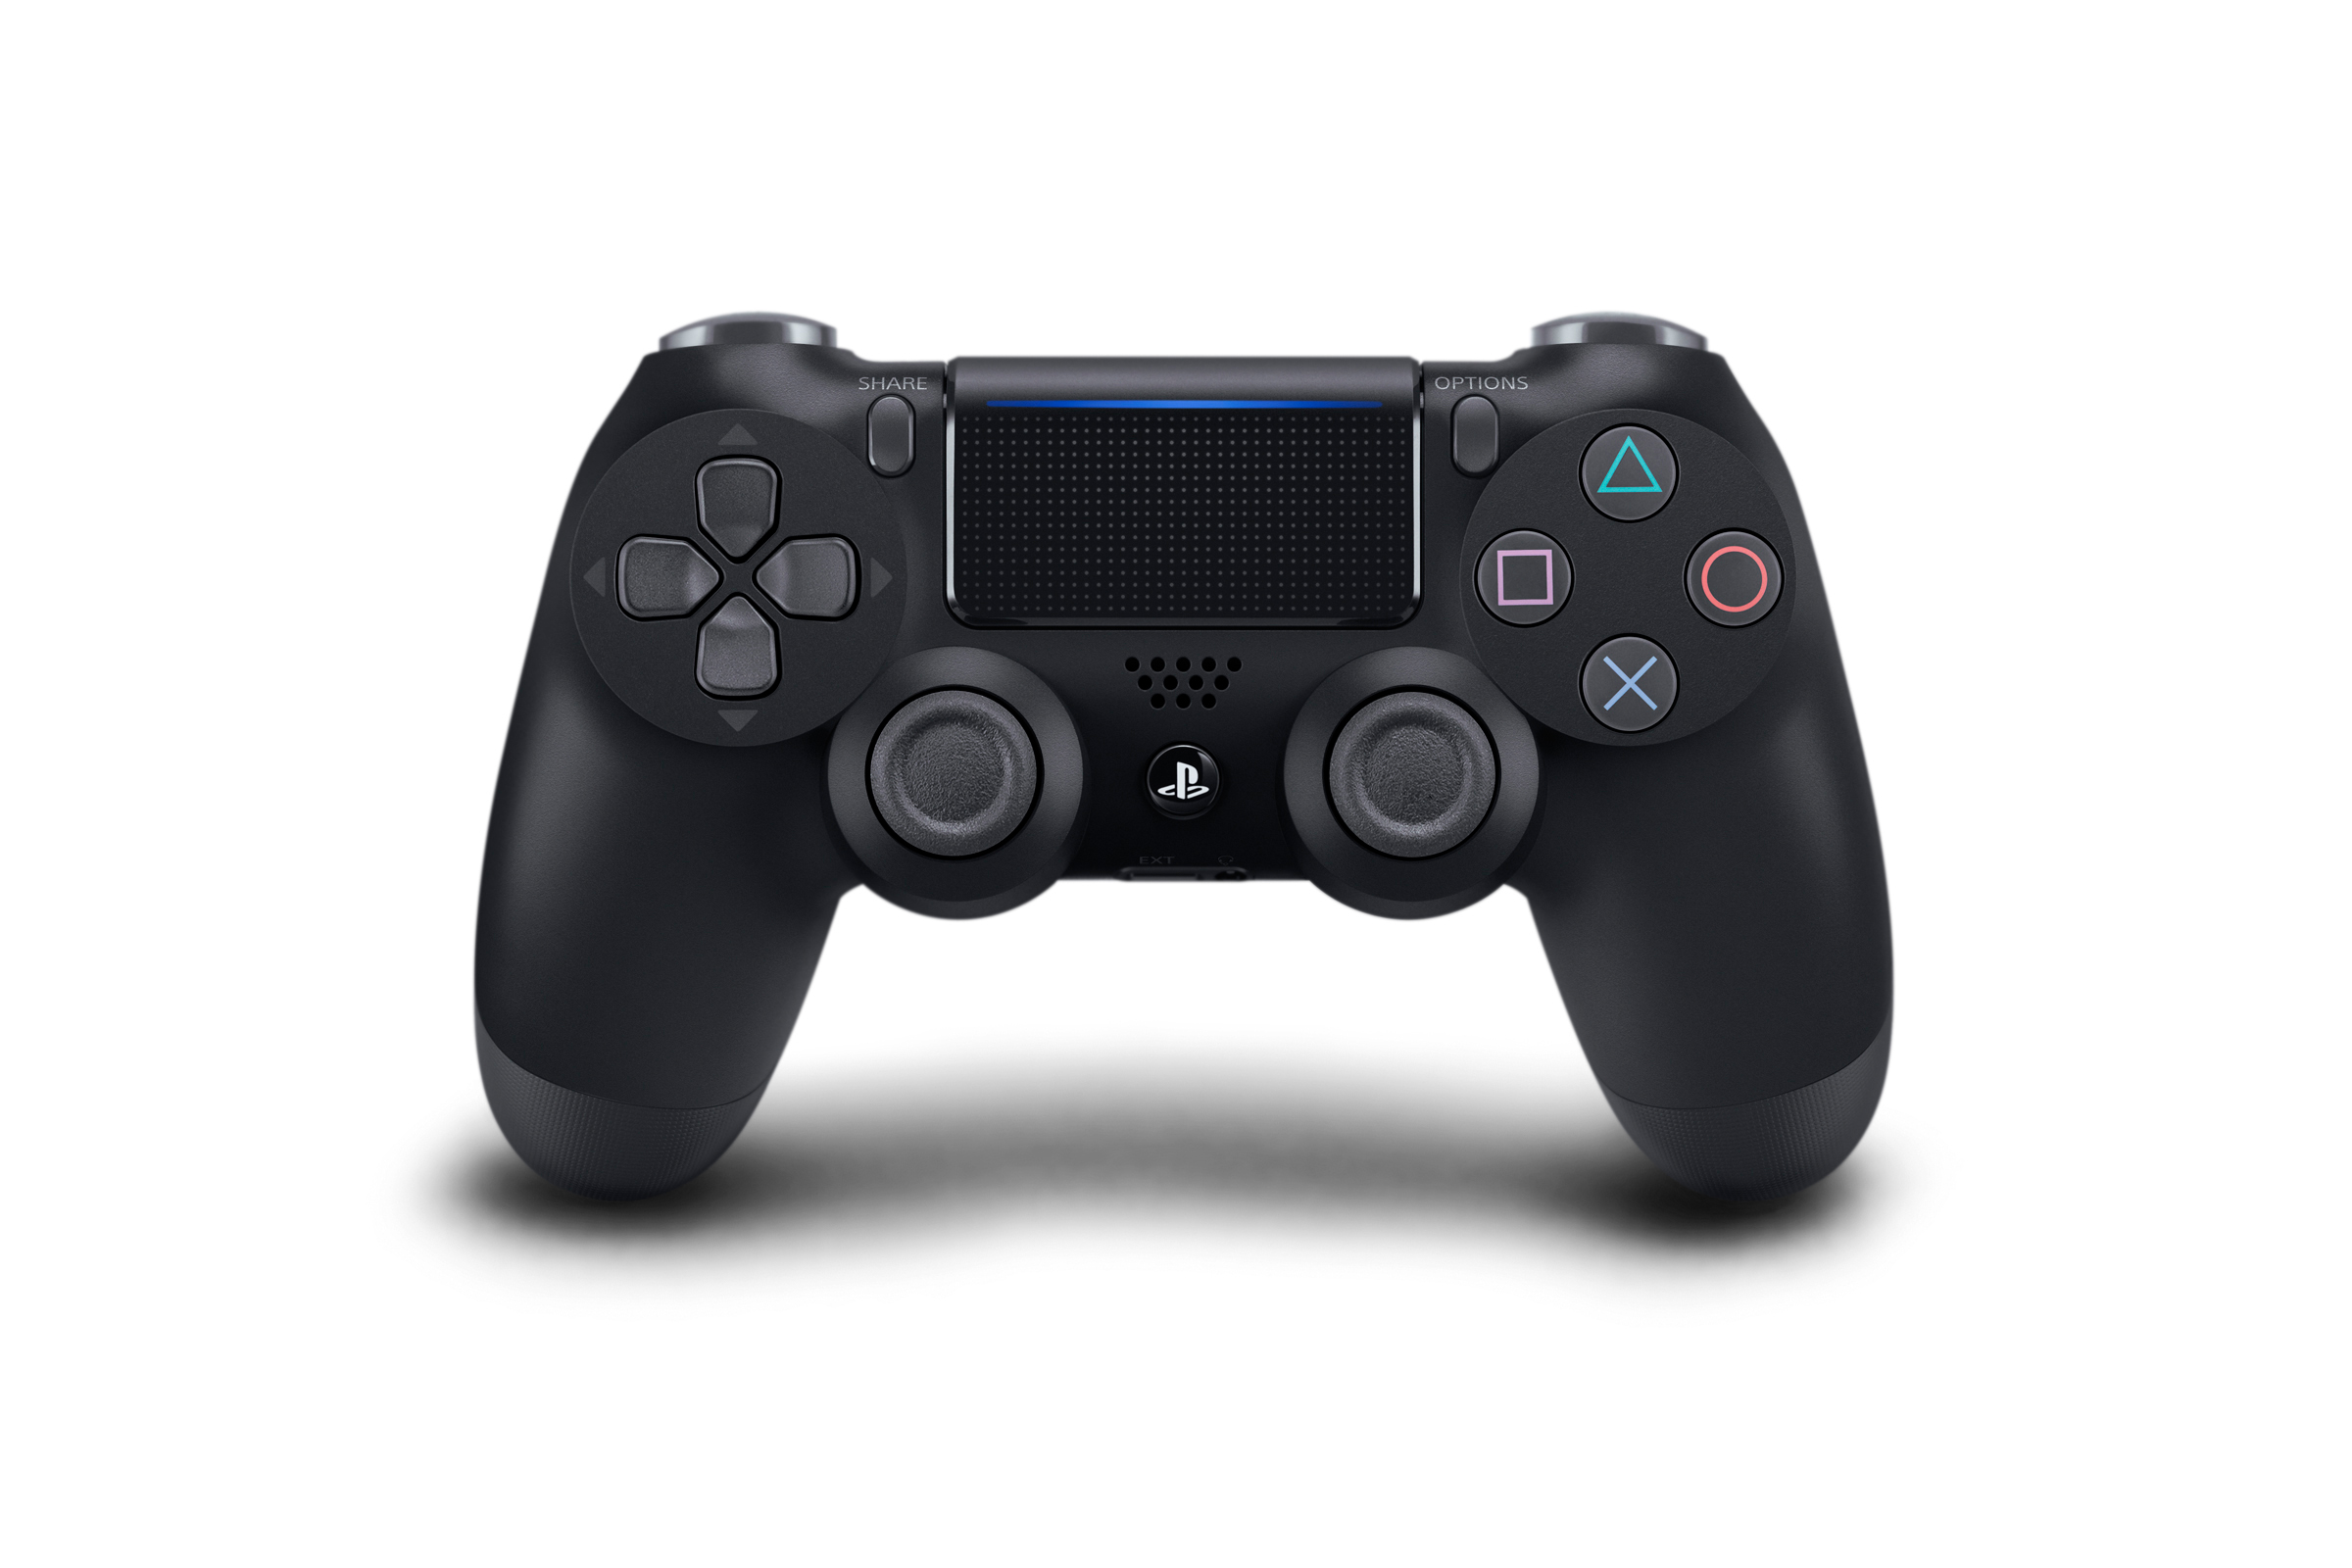 How to use a PS4 controller on PS3 | GamesRadar+